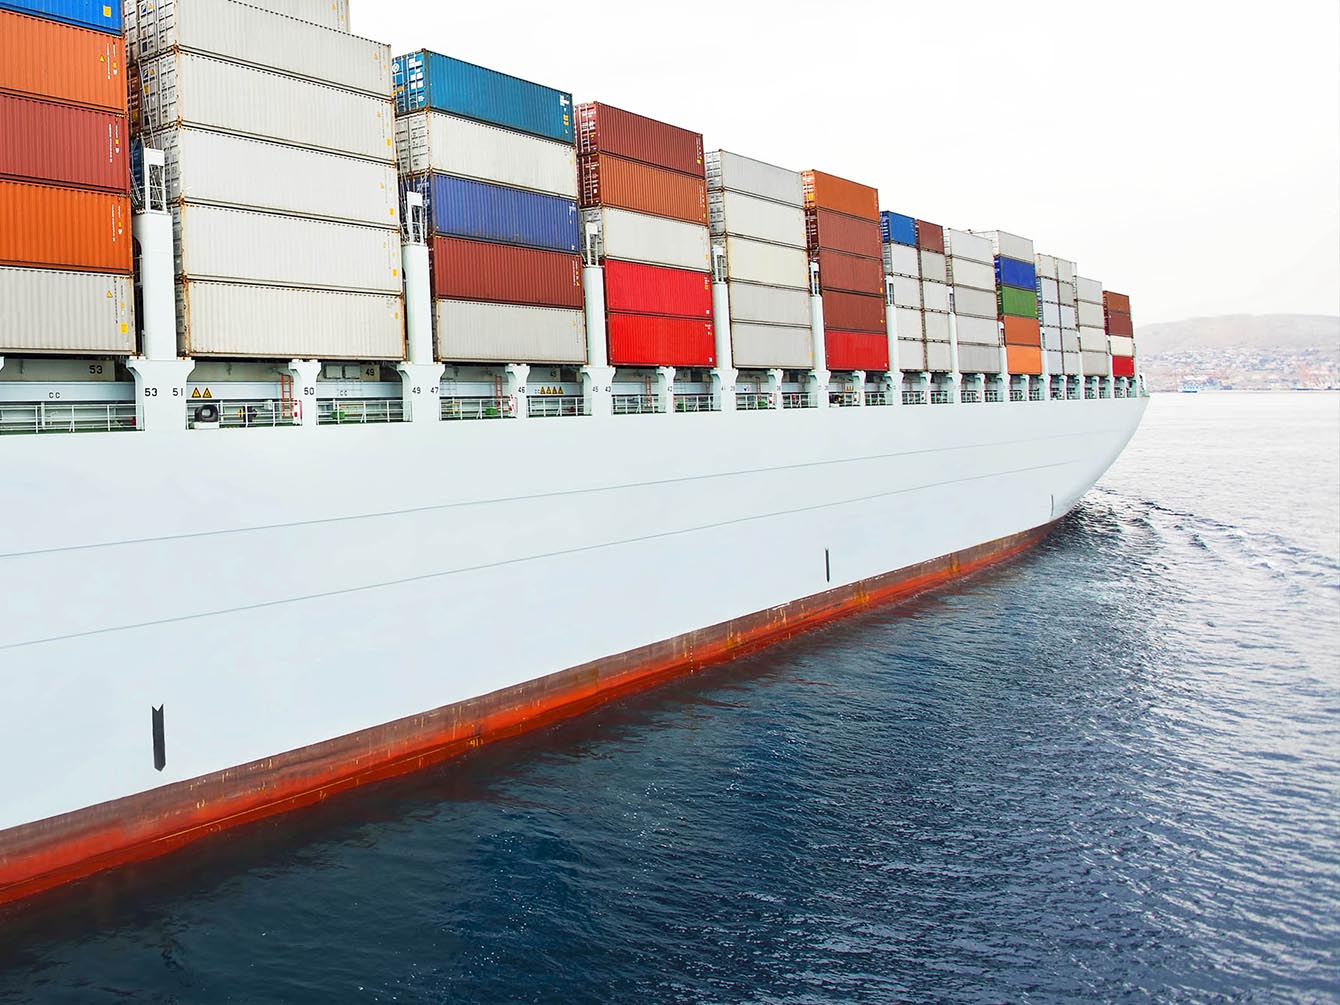 Comment faire face aux incertitudes actuelles du transport maritime